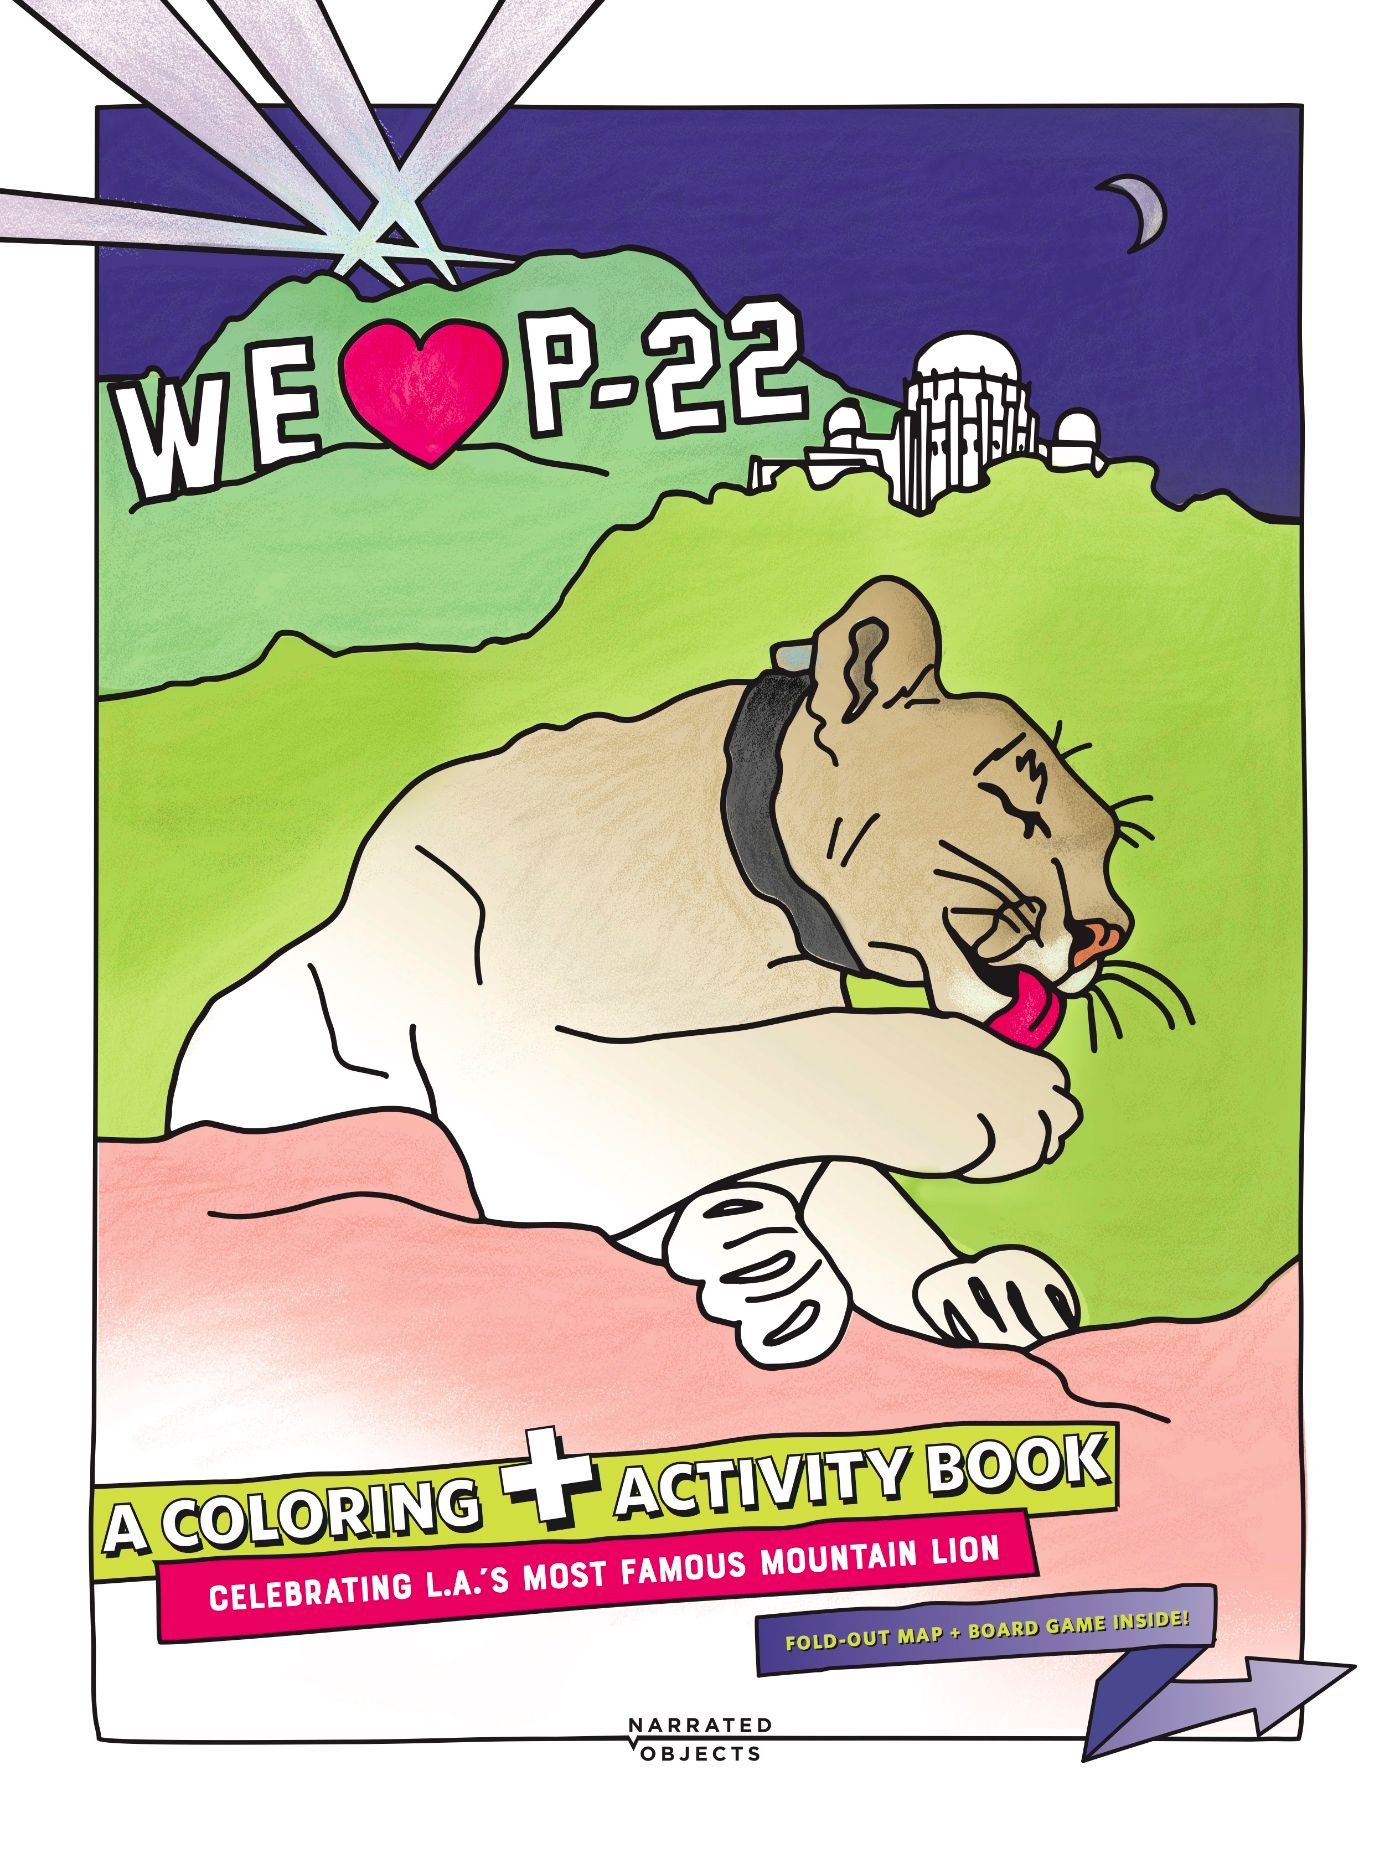 We Heart P-22: A Coloring + Activity Book Celebrating L.A.'s Most Famous Mountain Lion